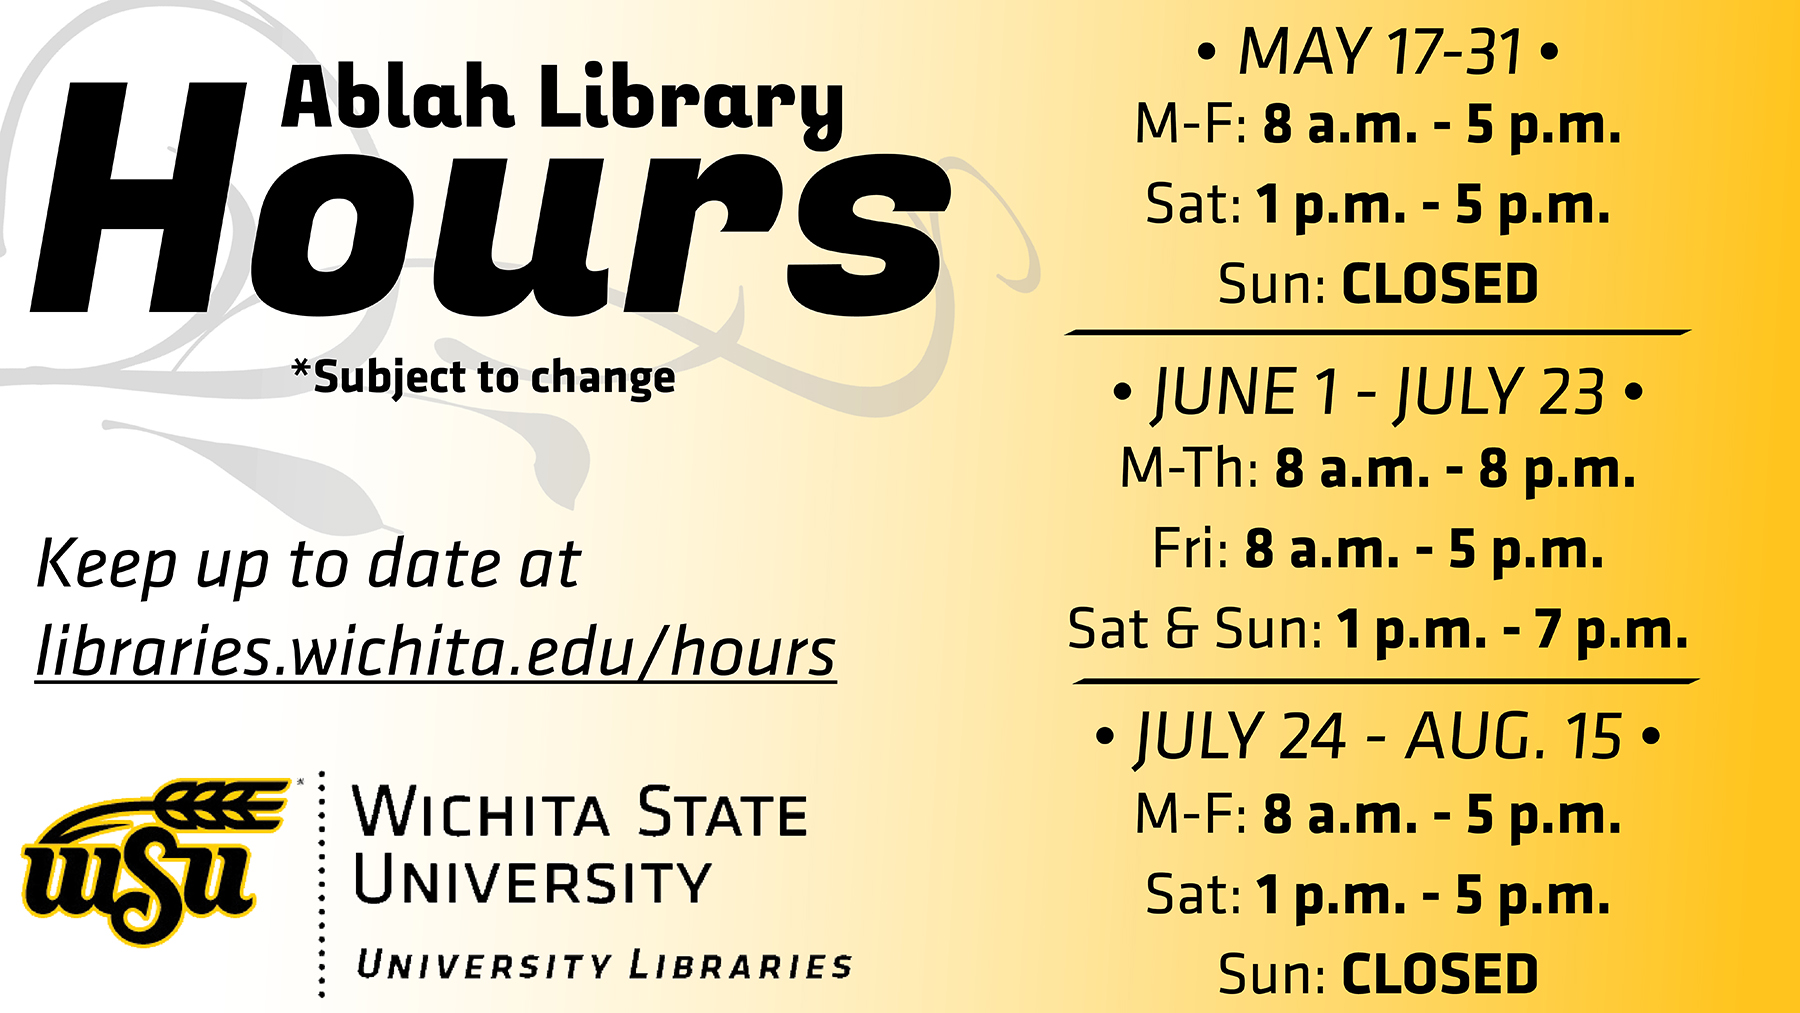 The following are summer hours for Ablah Library: May 17 - 31: M-F: 8 a.m. - 5 p.m. Sat: 1 - 5 p.m. Sun: CLOSED June 1 - July 23 M-Th: 8 a.m. - 8 p.m. Fri: 8 a.m. - 5 p.m. Sat - Sun: 1 - 7 p.m. July 24 - Aug. 15 M-F: 8 a.m. - 5 p.m. Sat: 1 - 5 p.m. Sun: CLOSED For more info on all Libraries hours, visit libraries.wichita.edu/hours or call our information line at (316) 978-3481.